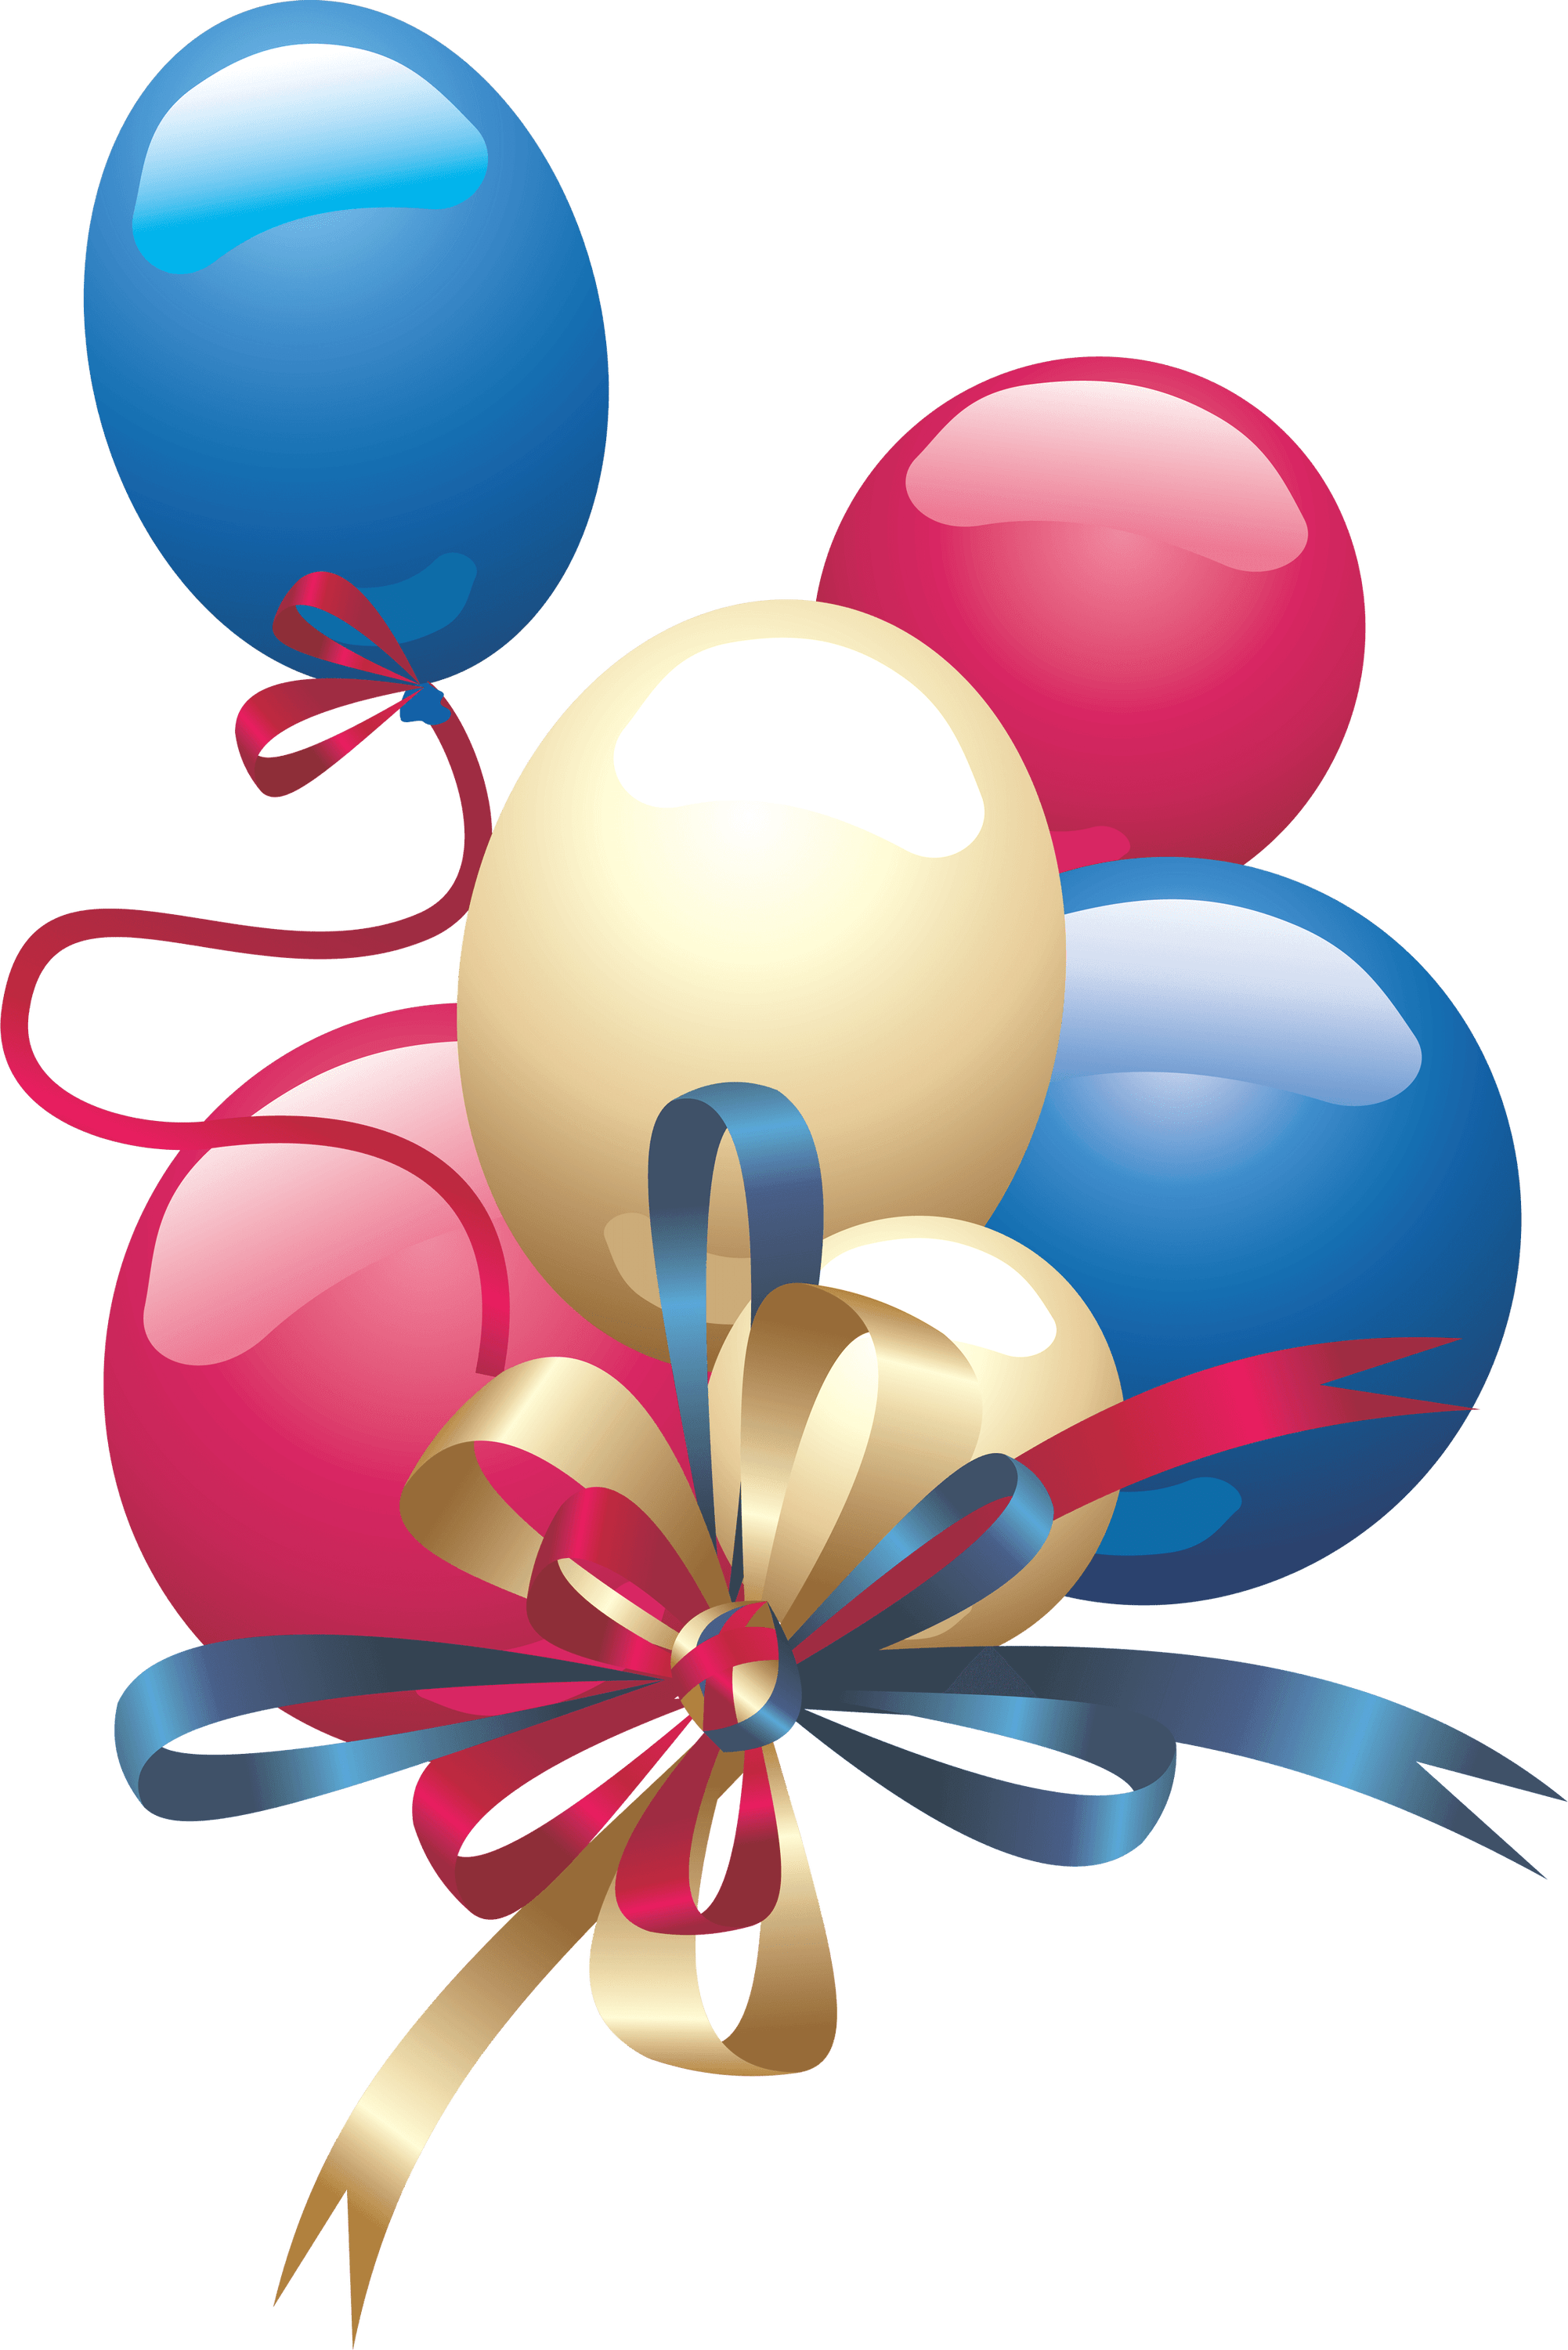 Party Balloon Transparent PNG